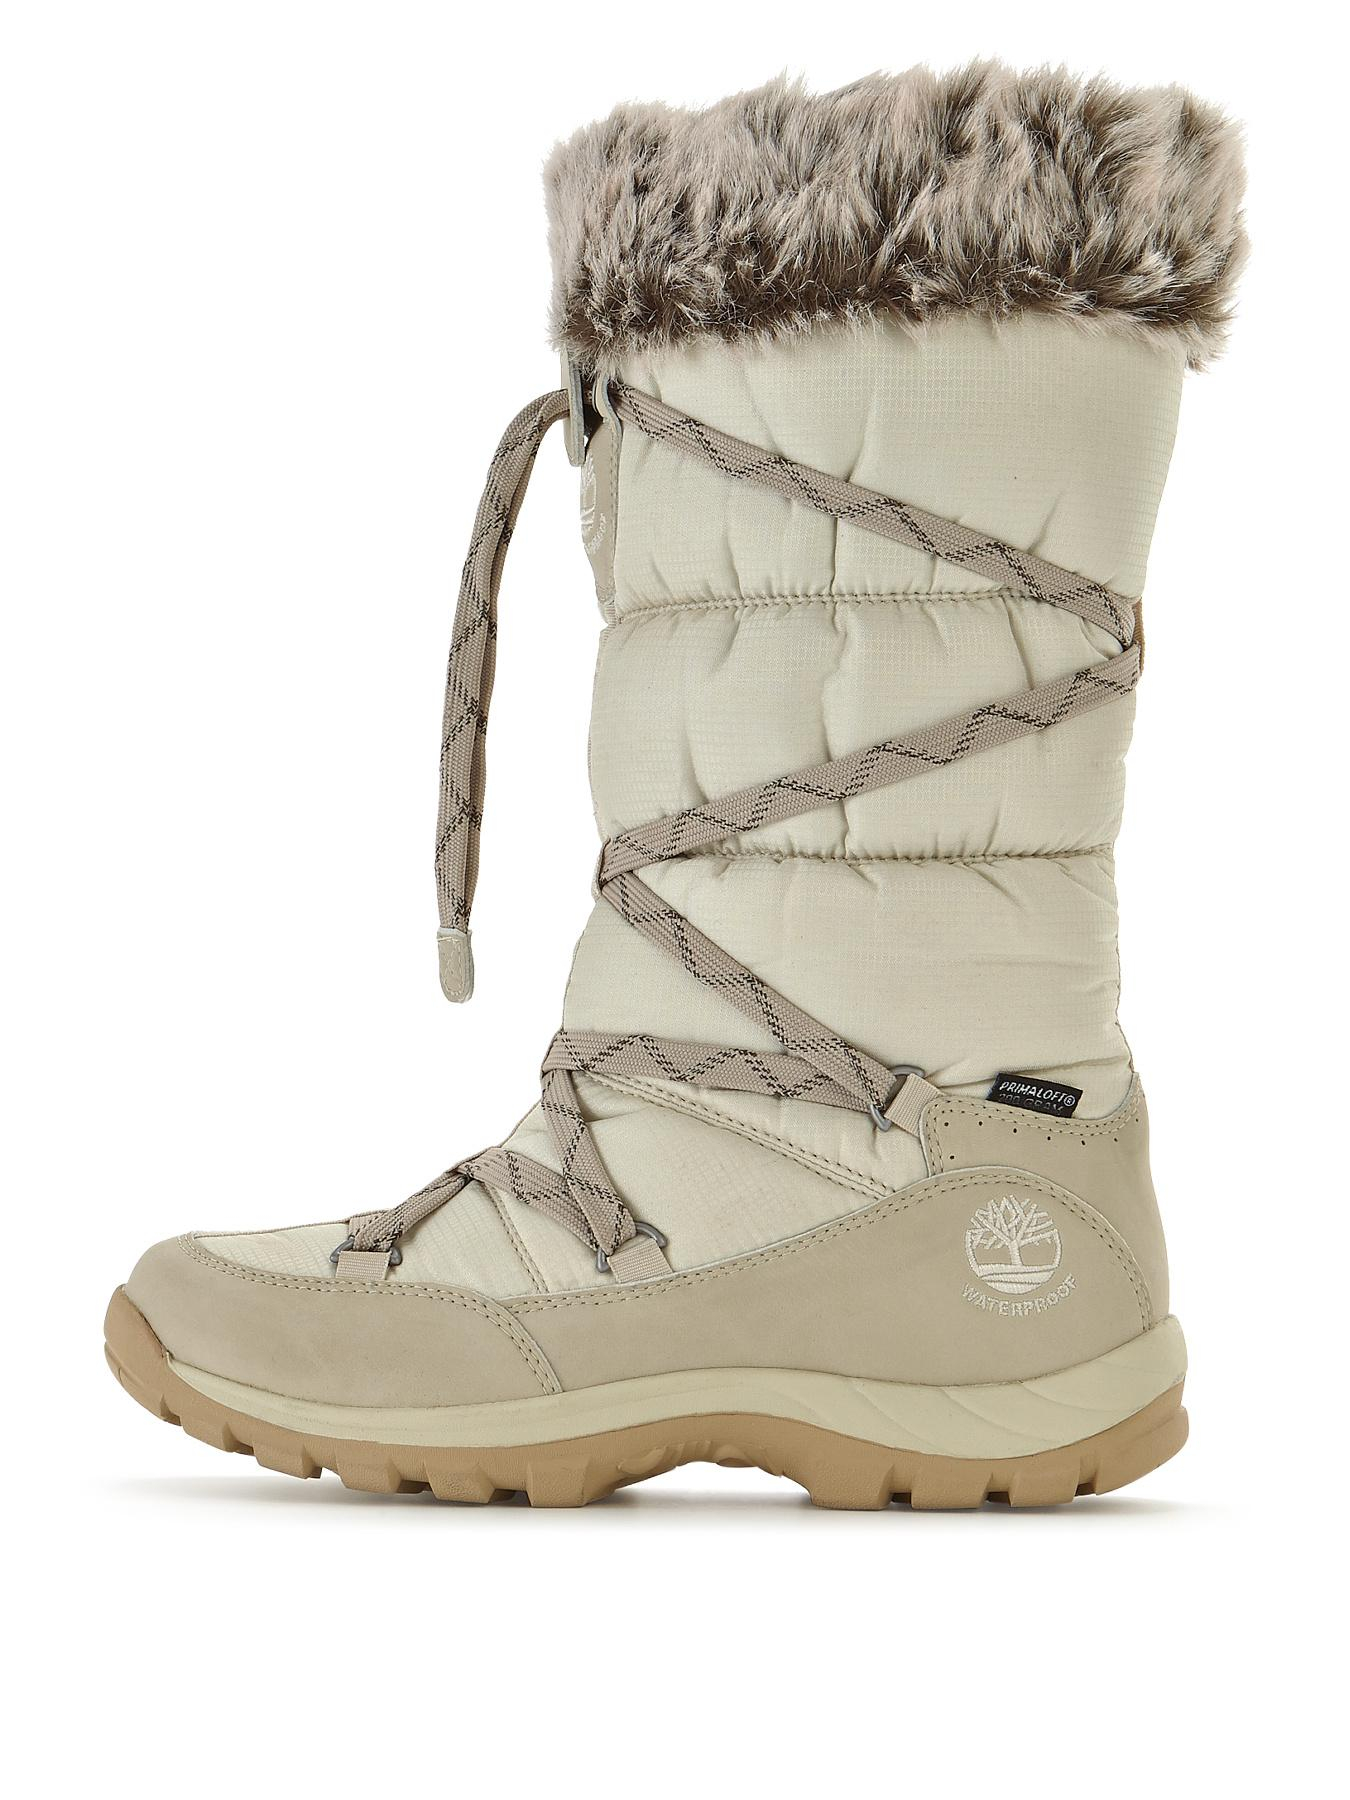 timberland chillberg snow boots in white for men winter. Black Bedroom Furniture Sets. Home Design Ideas